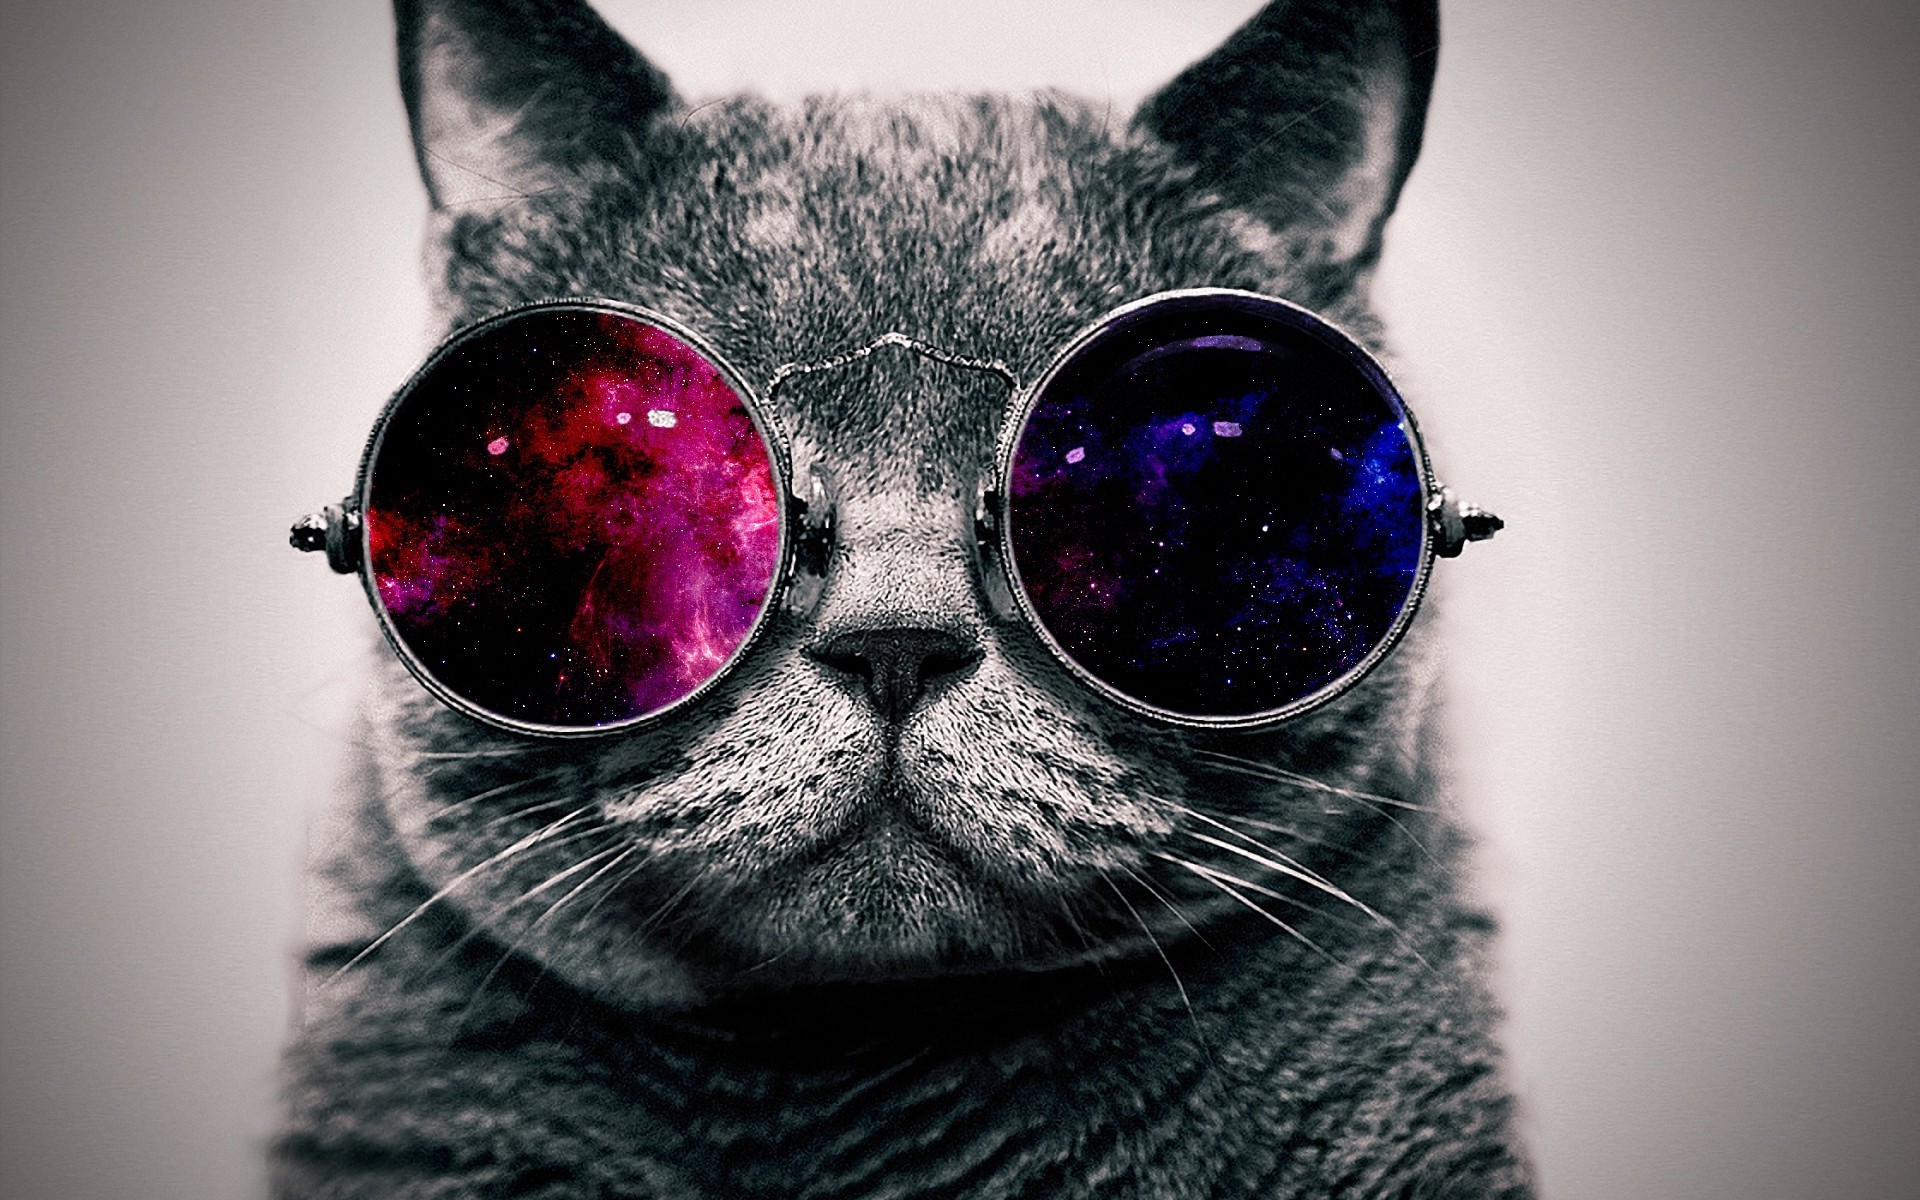 cat with cosmos glasses animal hd wallpaper 1920x1200 1233 1920x1200